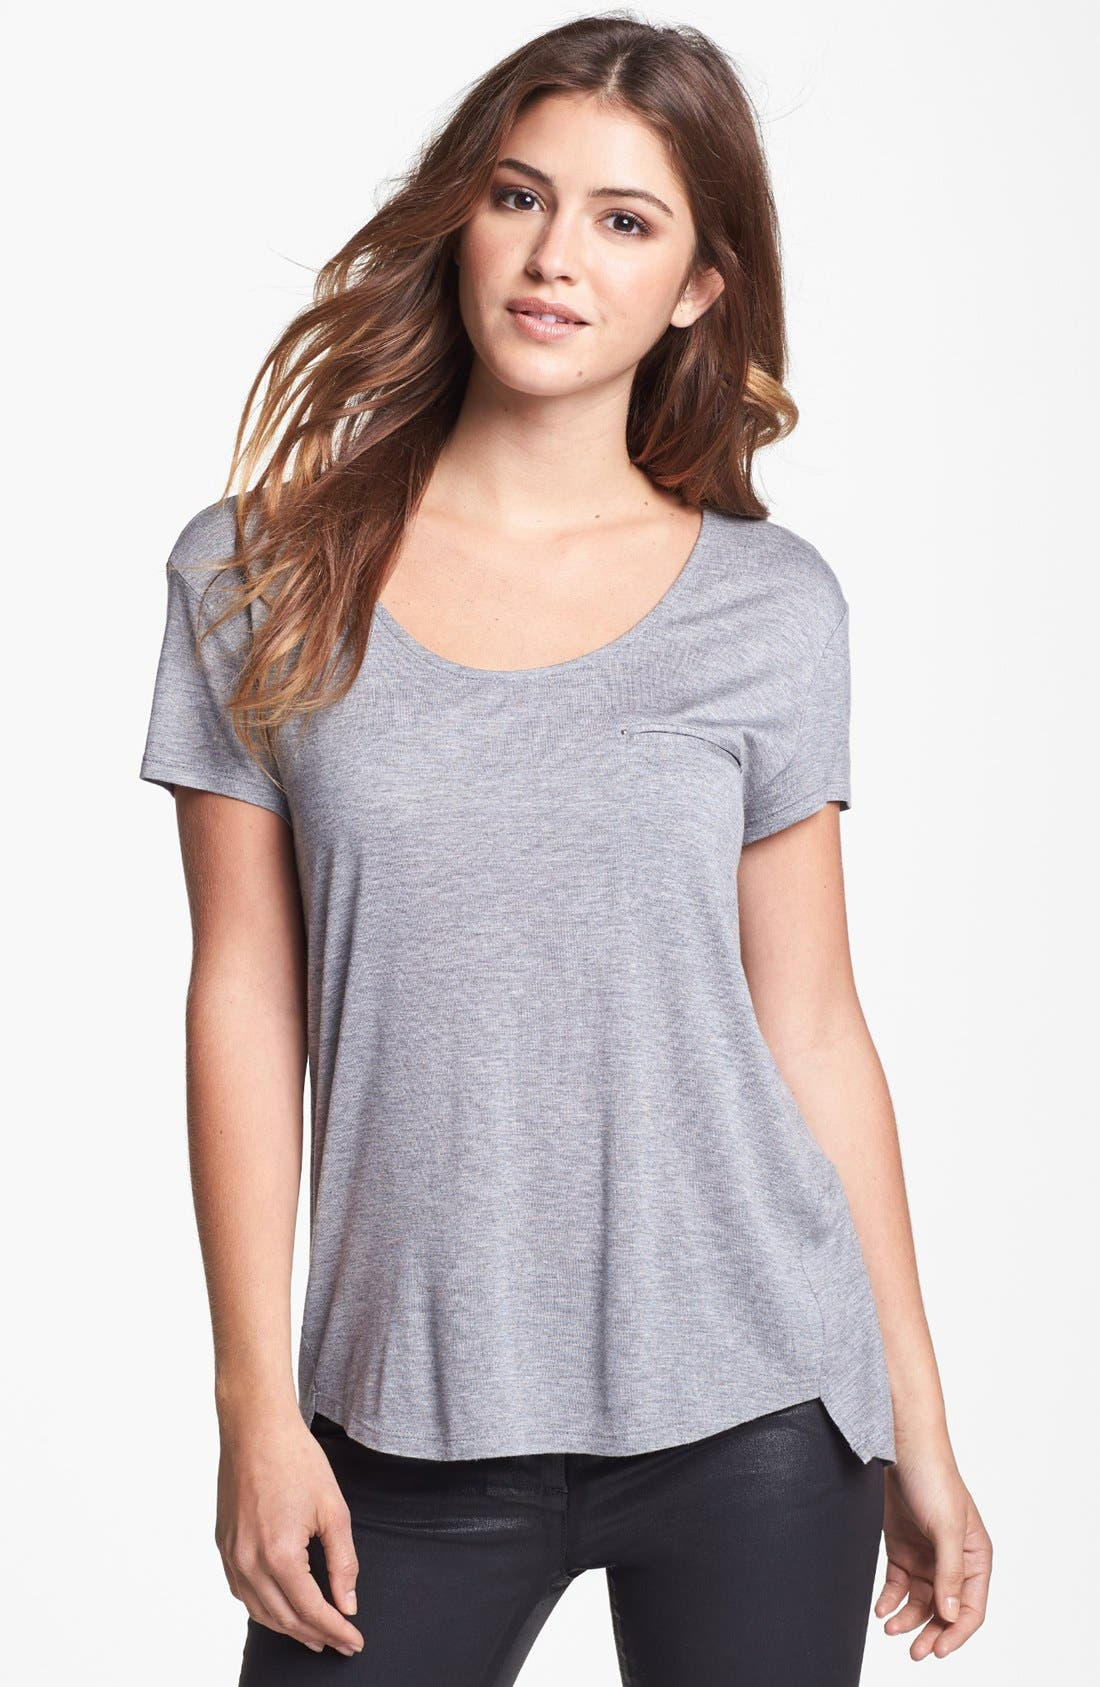 Alternate Image 1 Selected - Two by Vince Camuto High/Low Tee